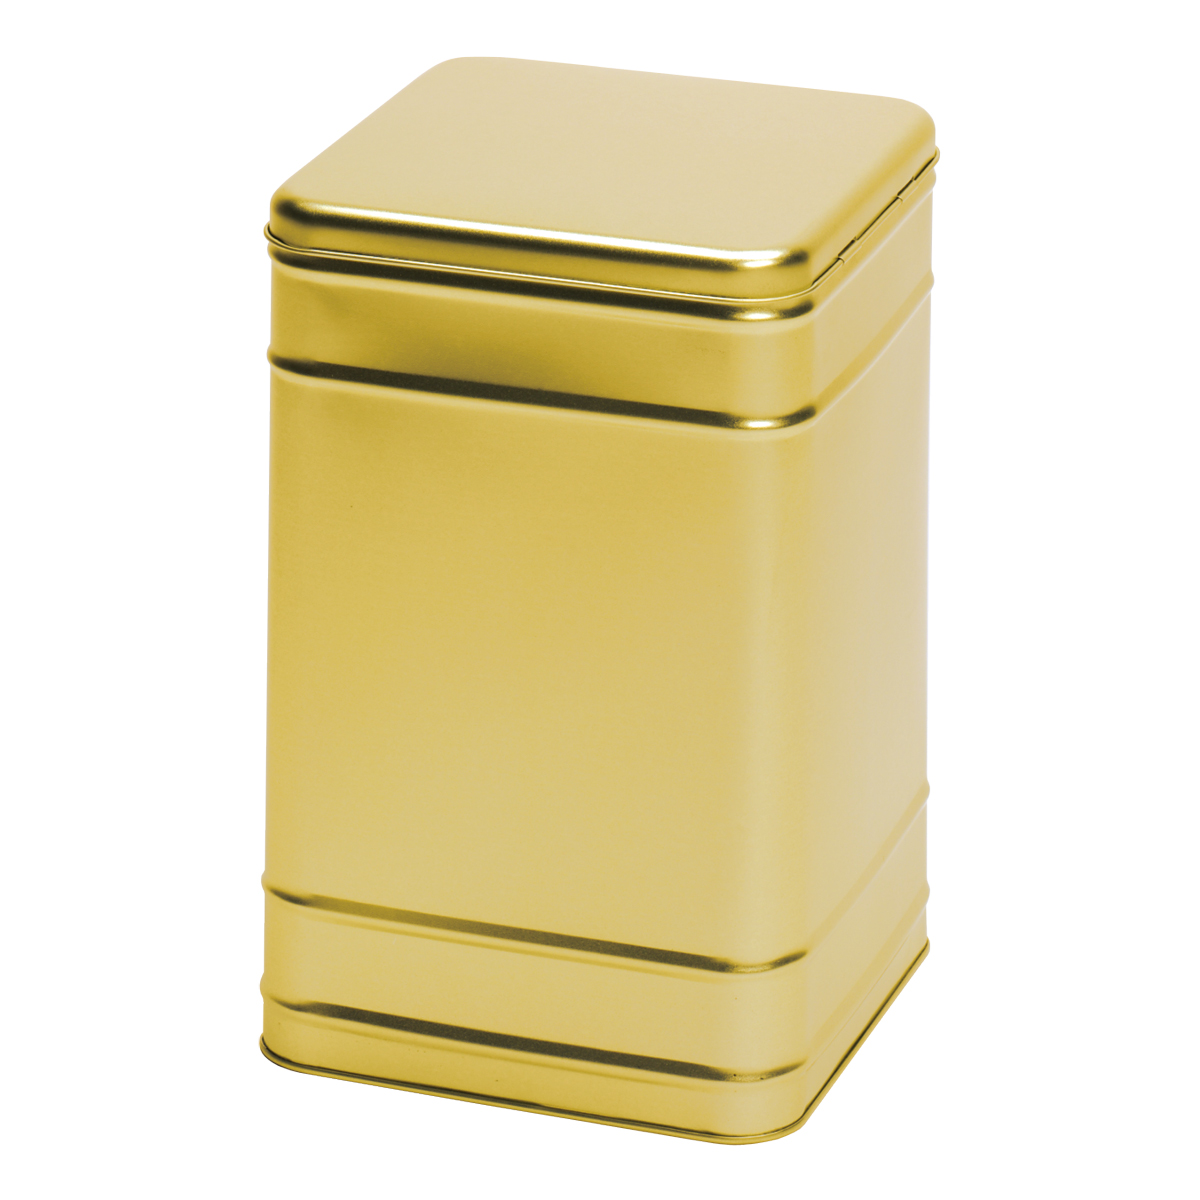 Storage Tin, 2000g, mattgolden